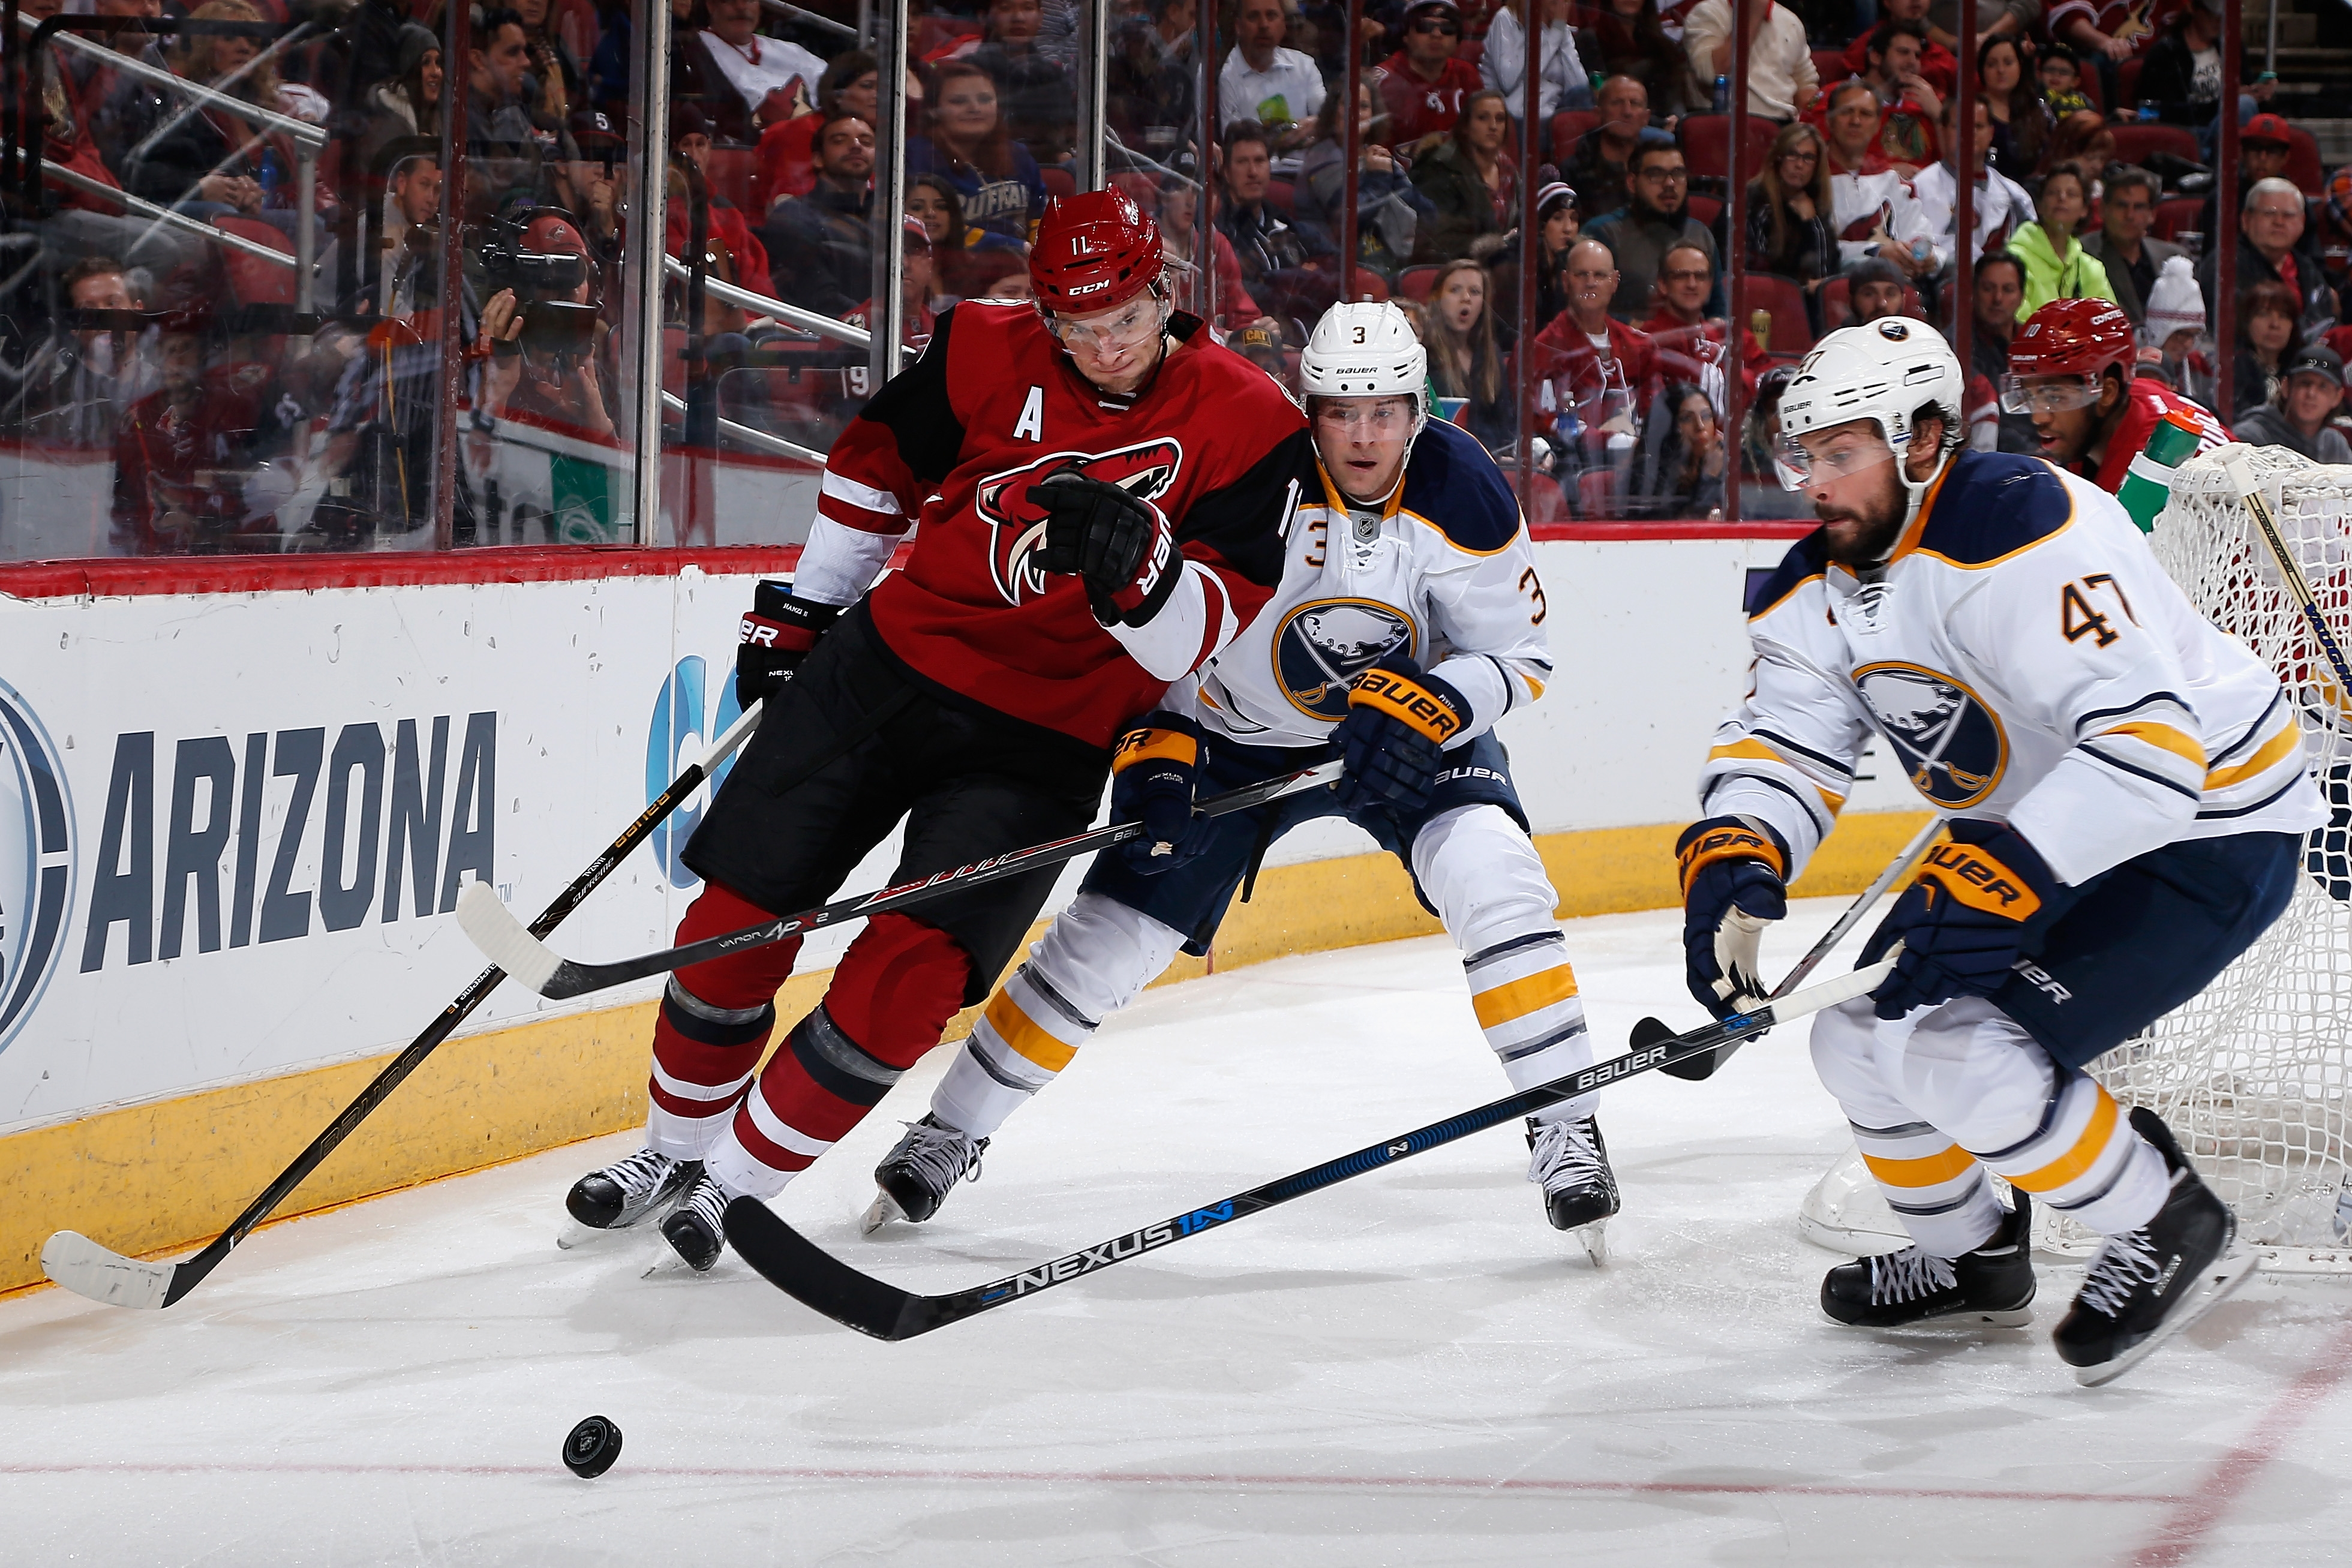 Zach Bogosian (47) looks to clear the puck while teammate Mark Pysyk contains the Coyotes' Martin Hanzal during the first period Monday night.